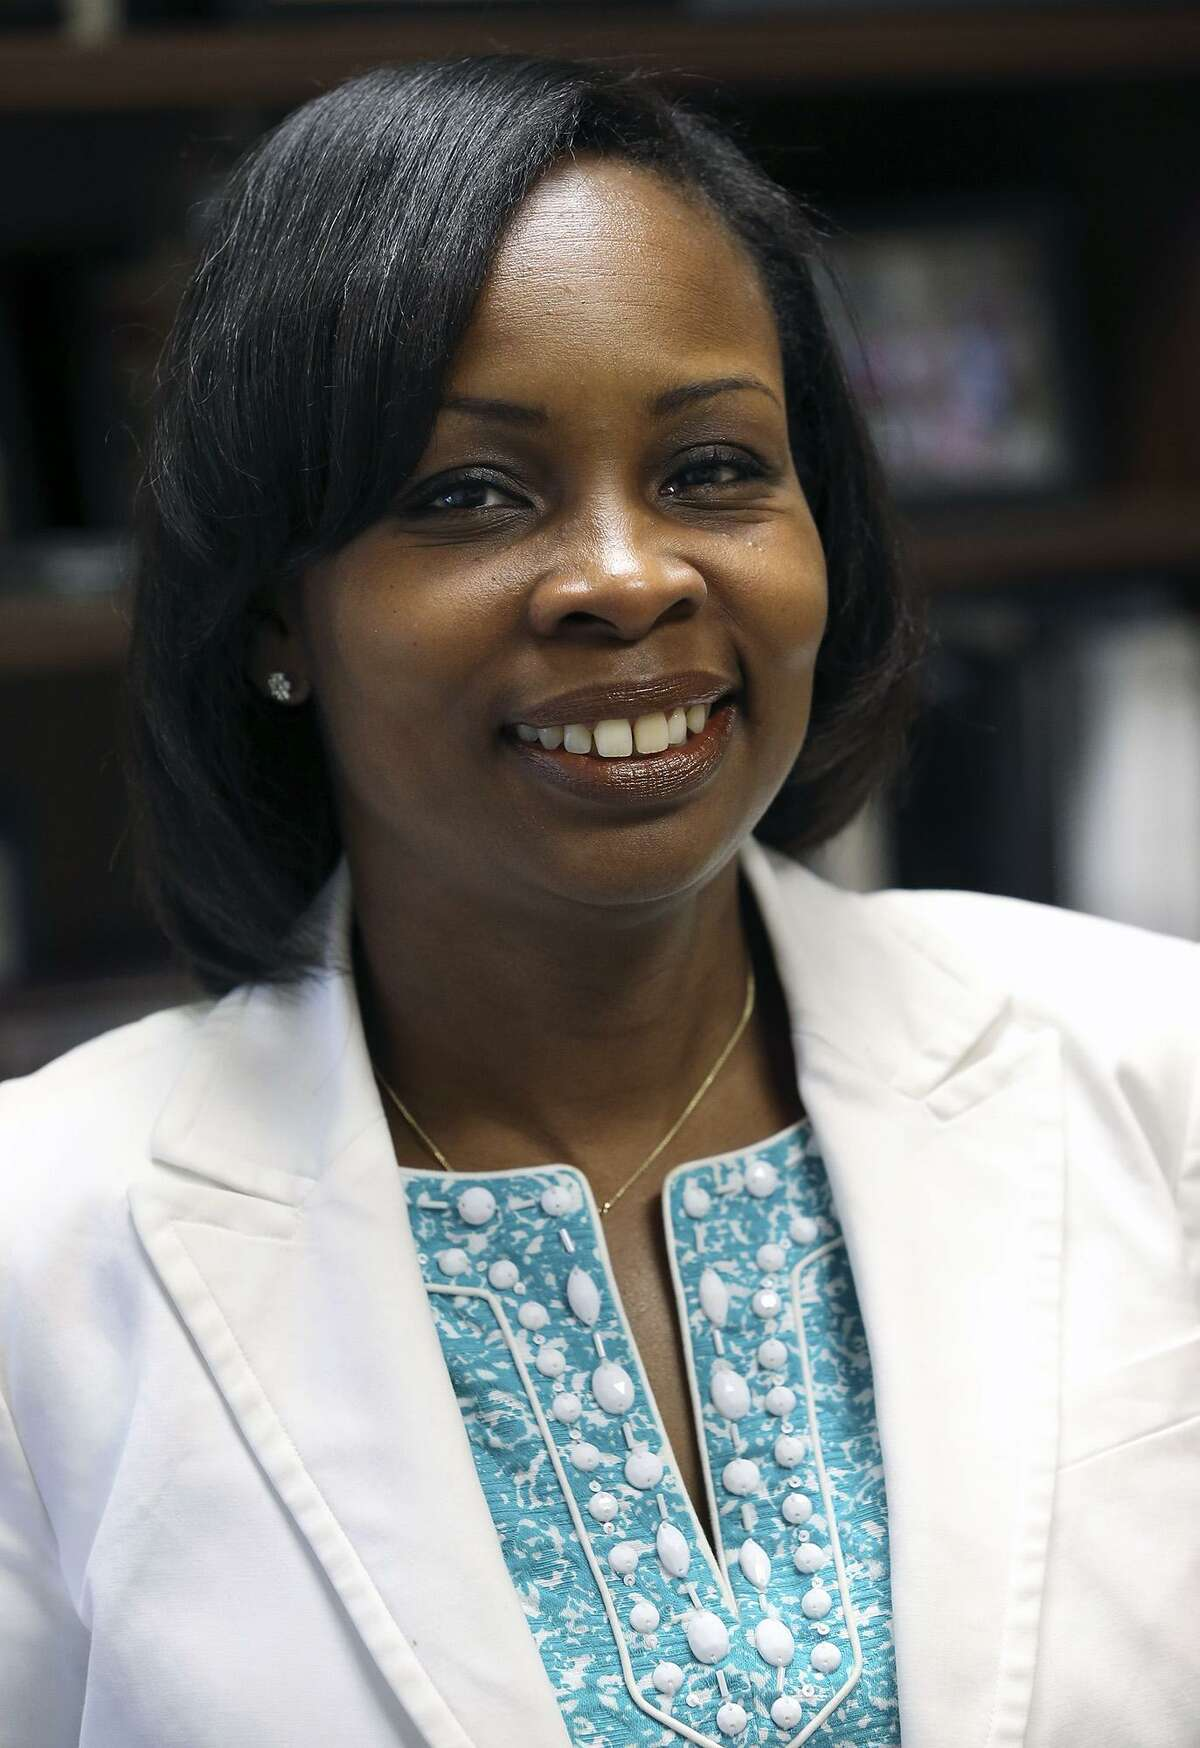 Ivy Taylor in her council office after being elected Mayor of San Antonio. July 23, 2014.